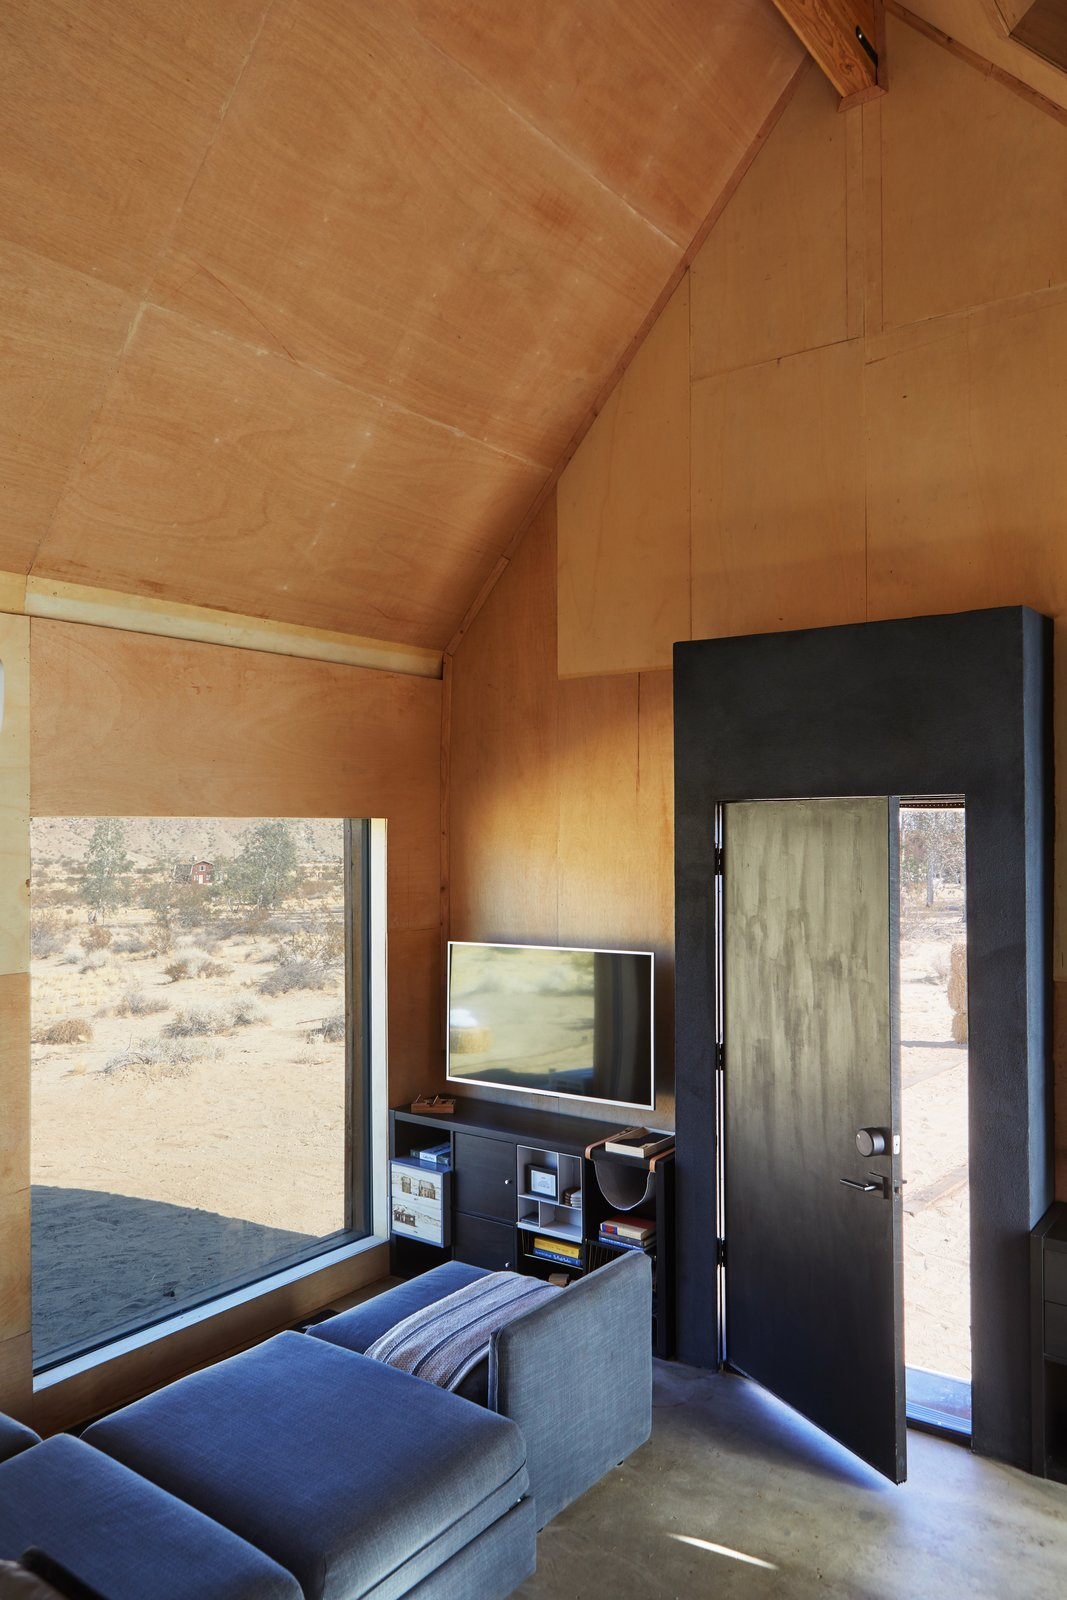 Living Room, Concrete Floor, and Sectional The house has smart locks by August, Caséta wireless controls by Lutron, and a hub security system by Scout.  Photo 9 of 13 in These Tiny, Off-the-Grid Cabins Near Joshua Tree Look Totally Apocalypse-Proof